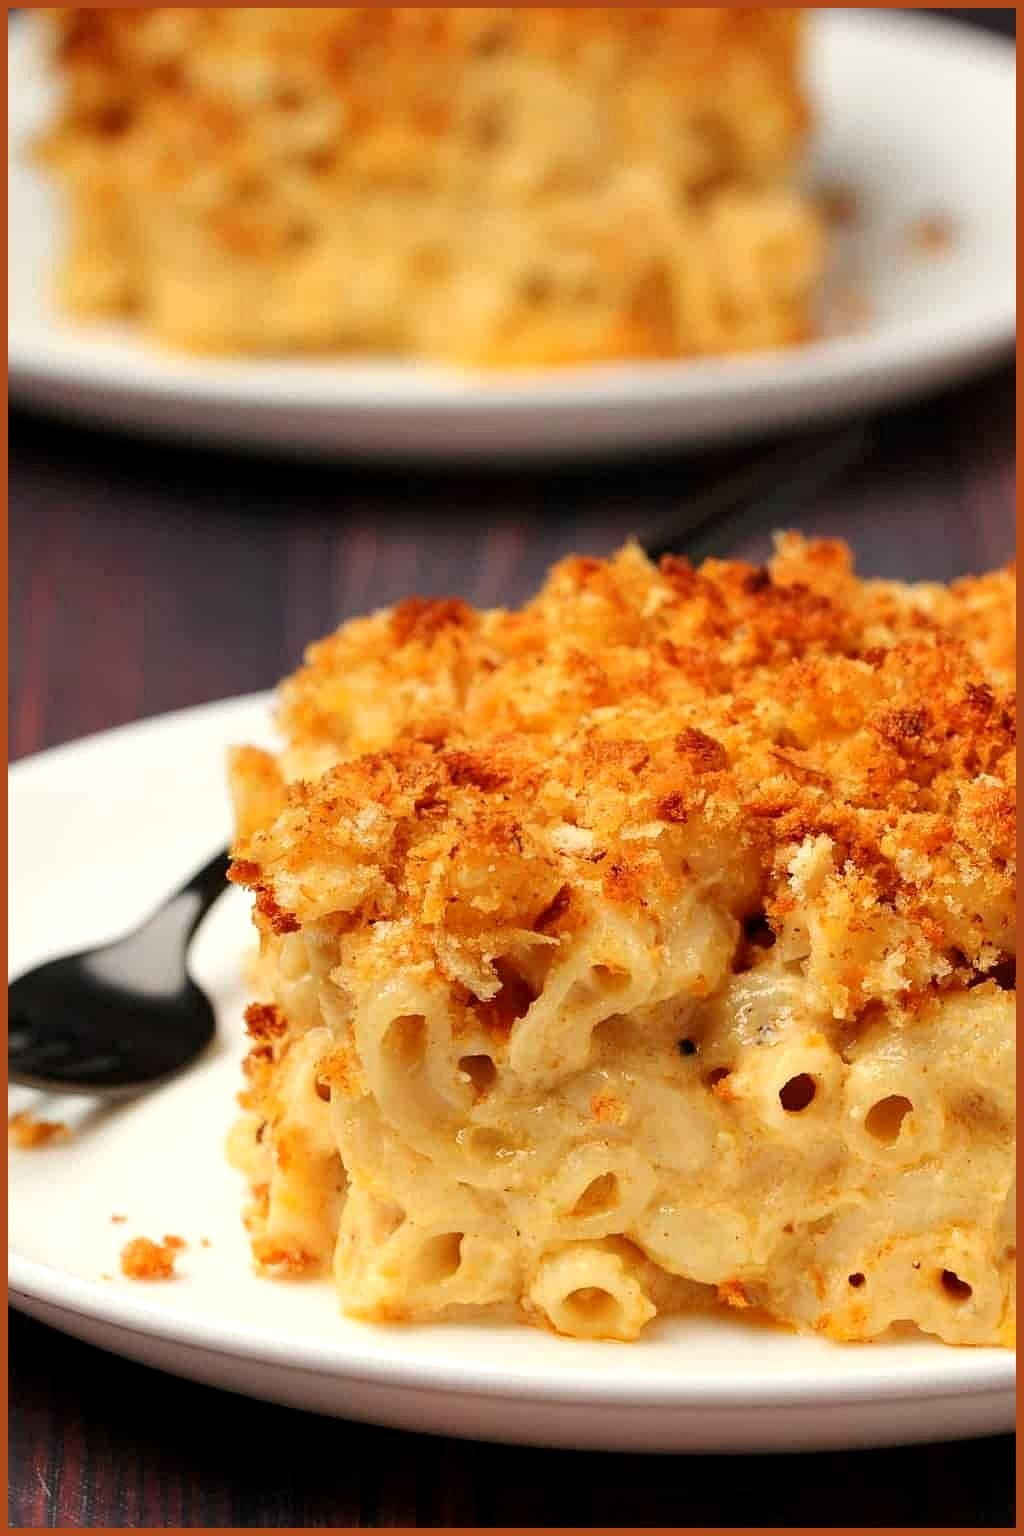 The Best Vegan Mac and Cheese Classic Baked This classic vegan mac and cheese is ultra cheesy saucy